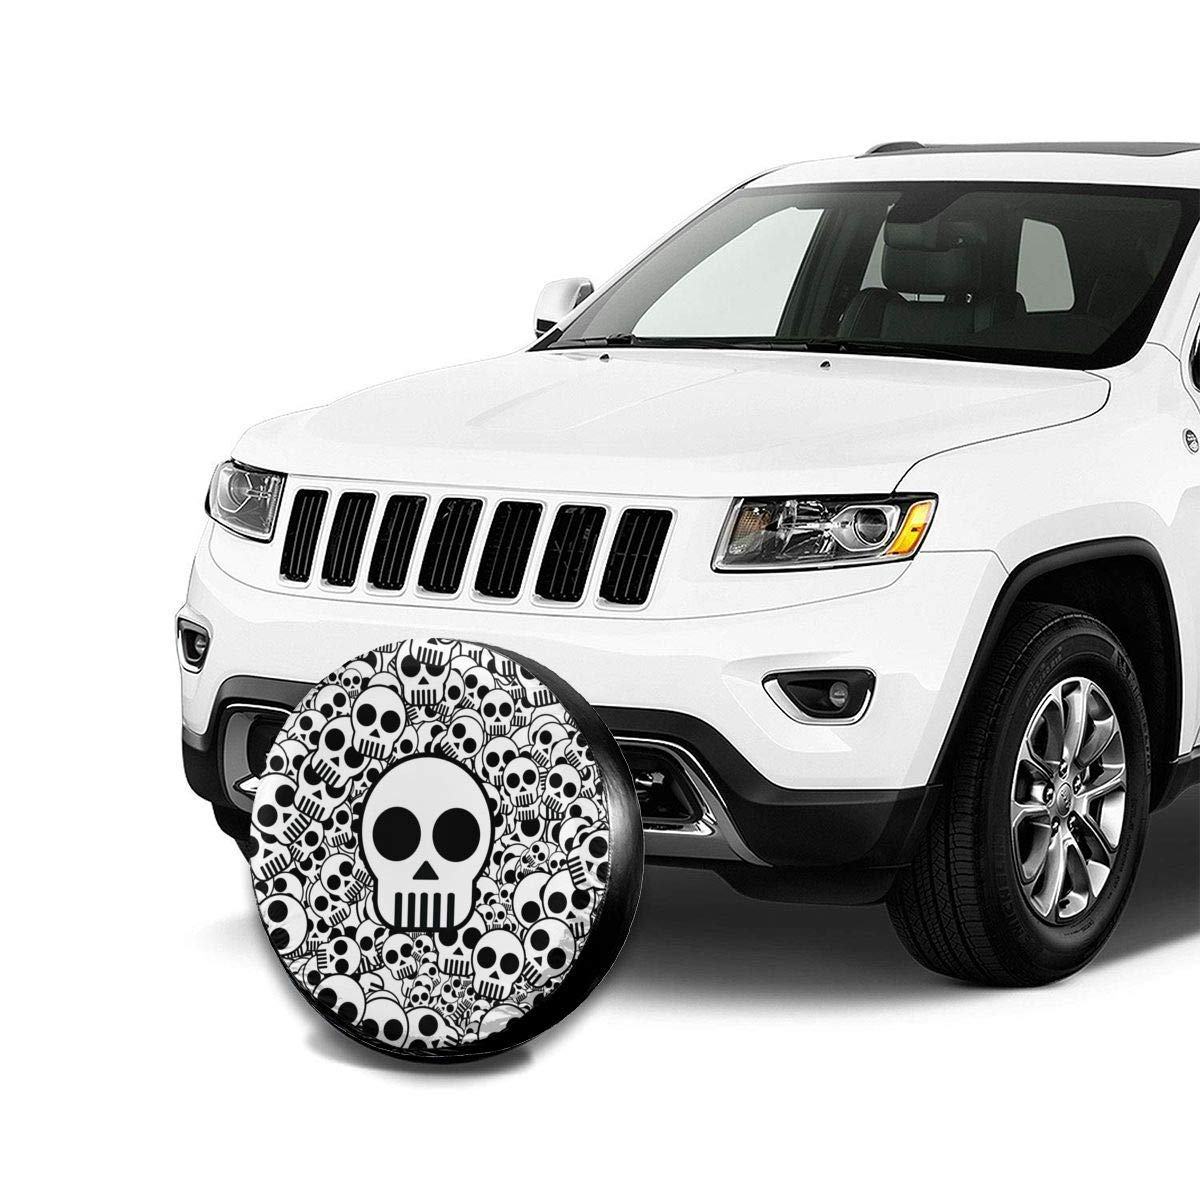 Xhayo Skulls Wheel Cover Wheelcover Spare Tyre Tire for SUV,RV,Trailer,Truck Wheel Fits Entire Wheel